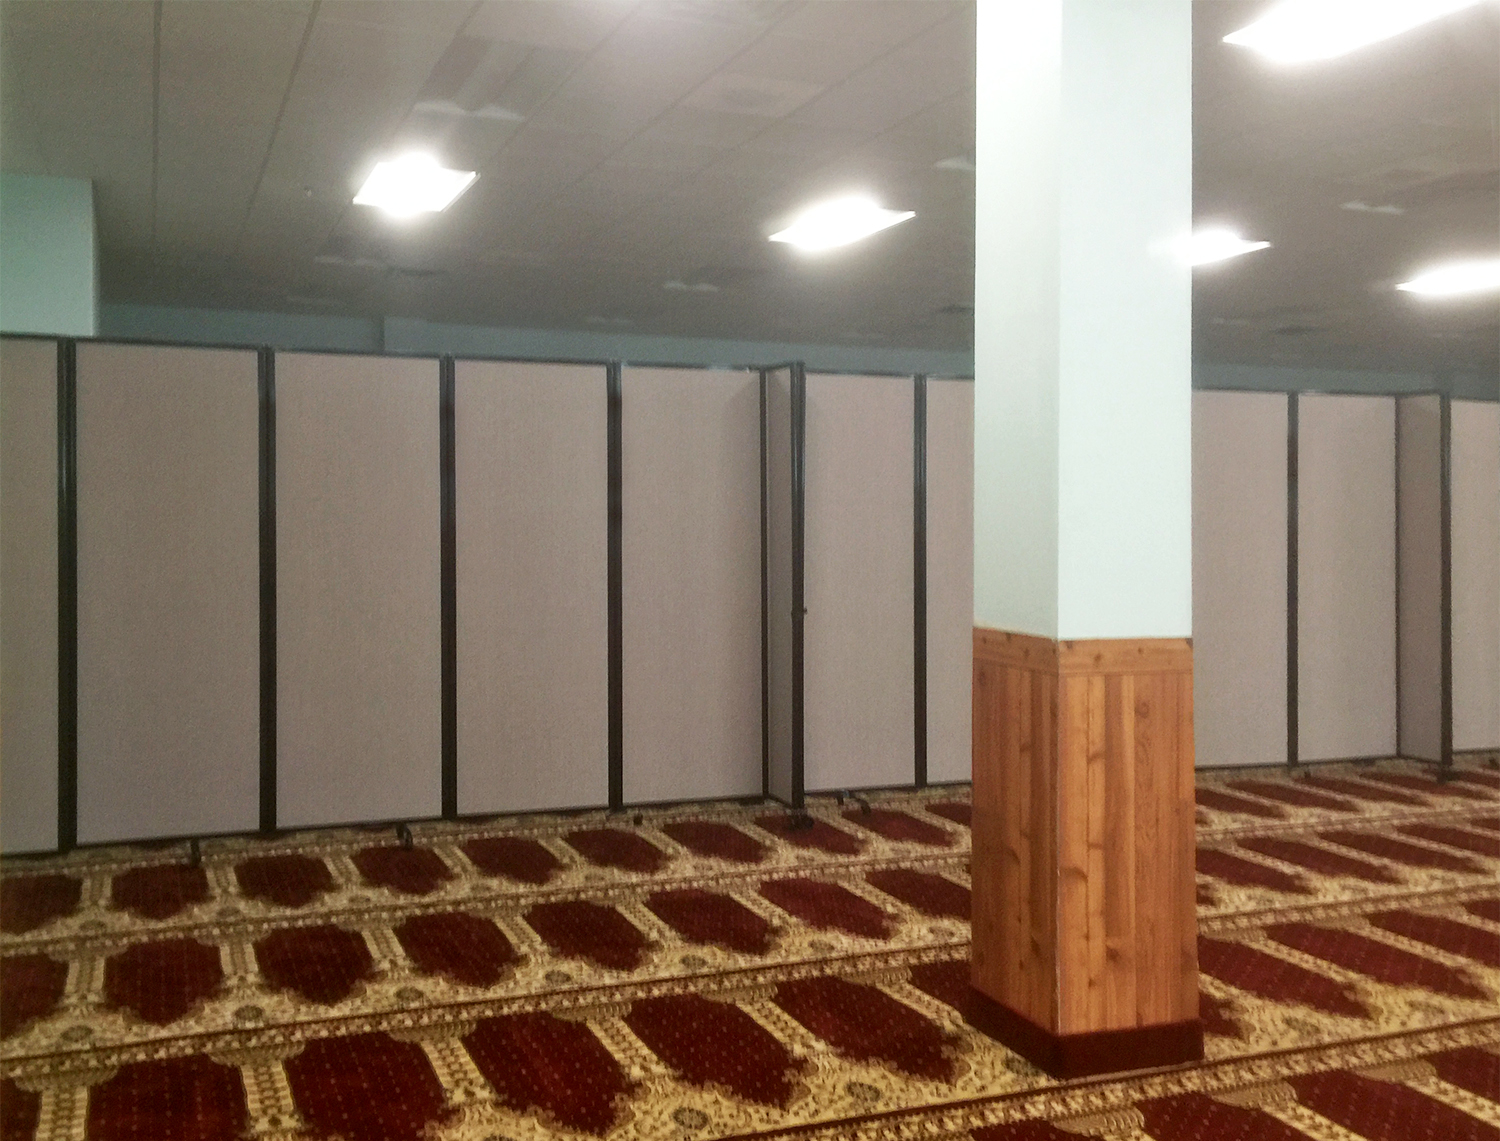 Portable partition featured in place of worship.